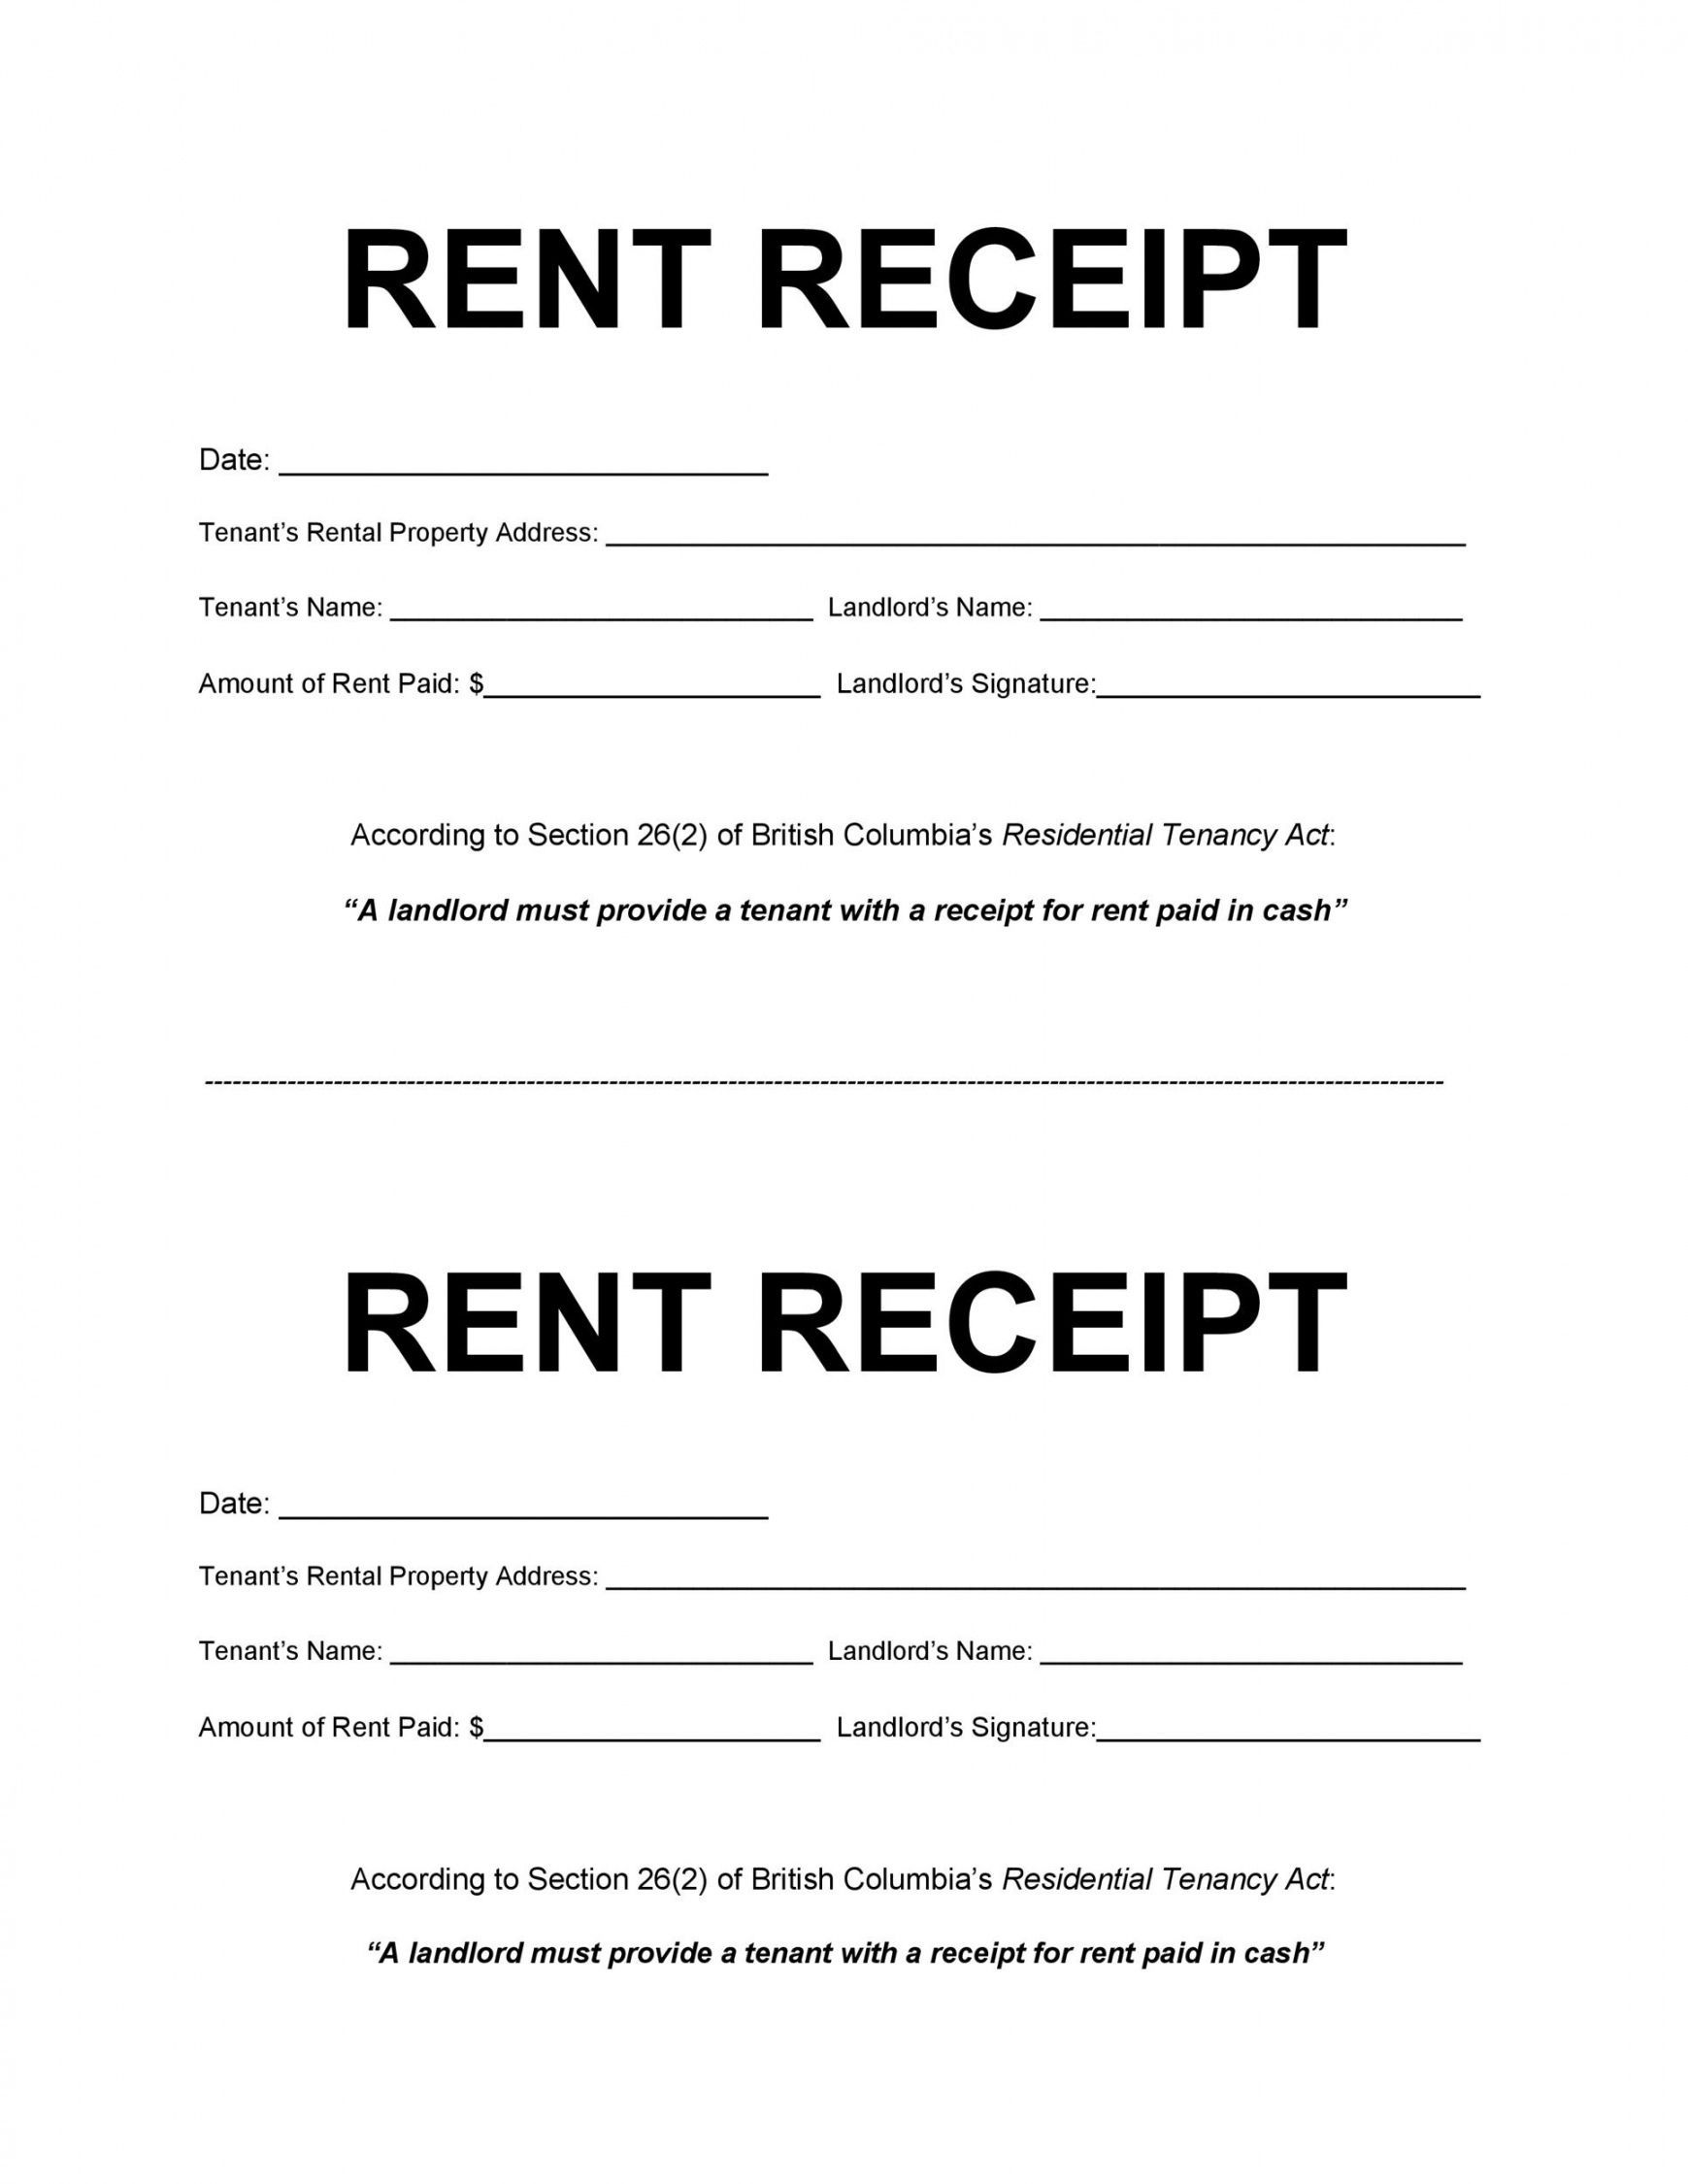 Get Our Image Of Online Rental Receipt Template Receipt Template How To Get Money Being A Landlord